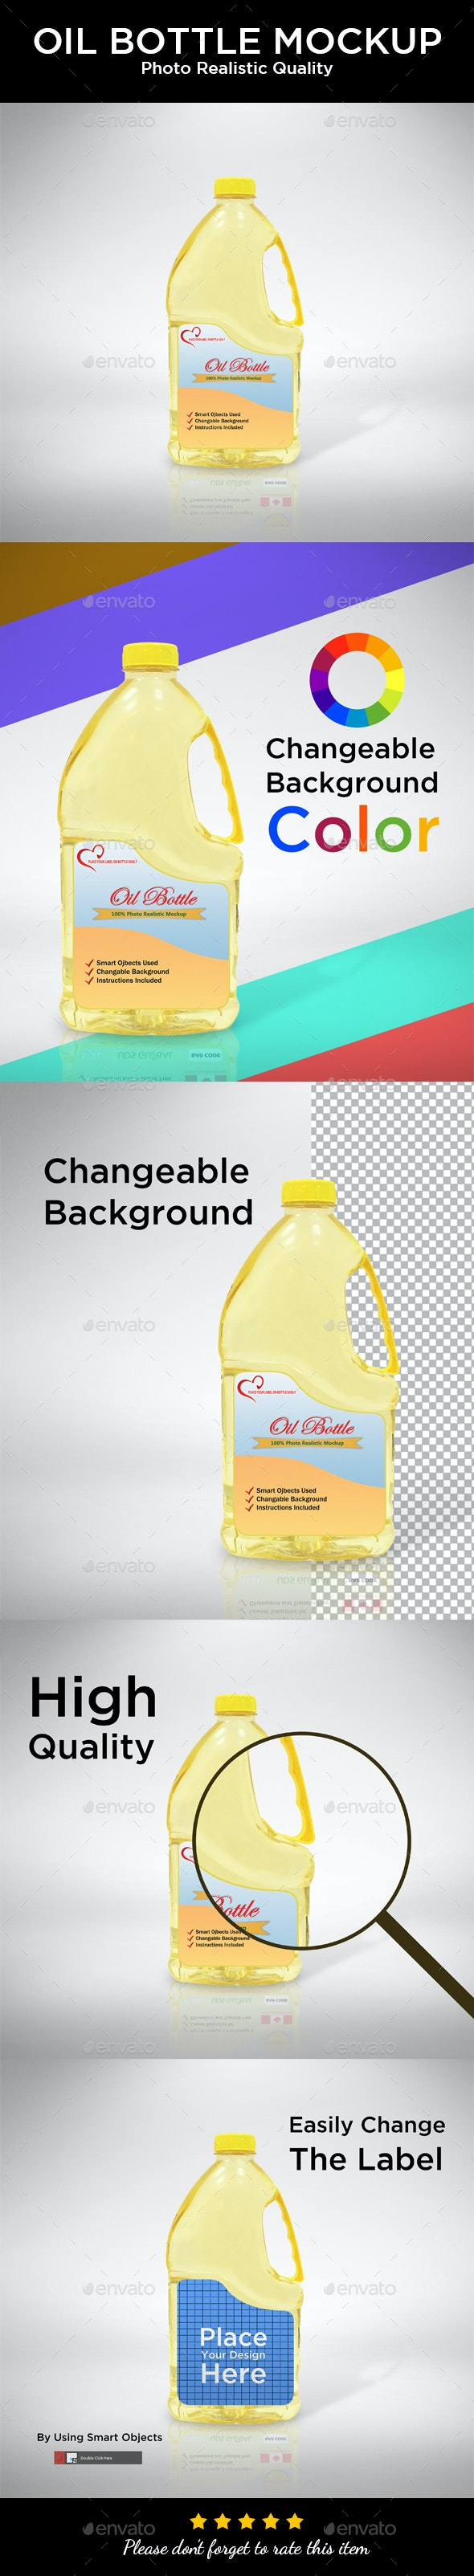 Oil Bottle Label Mockup - Packaging Product Mock-Ups